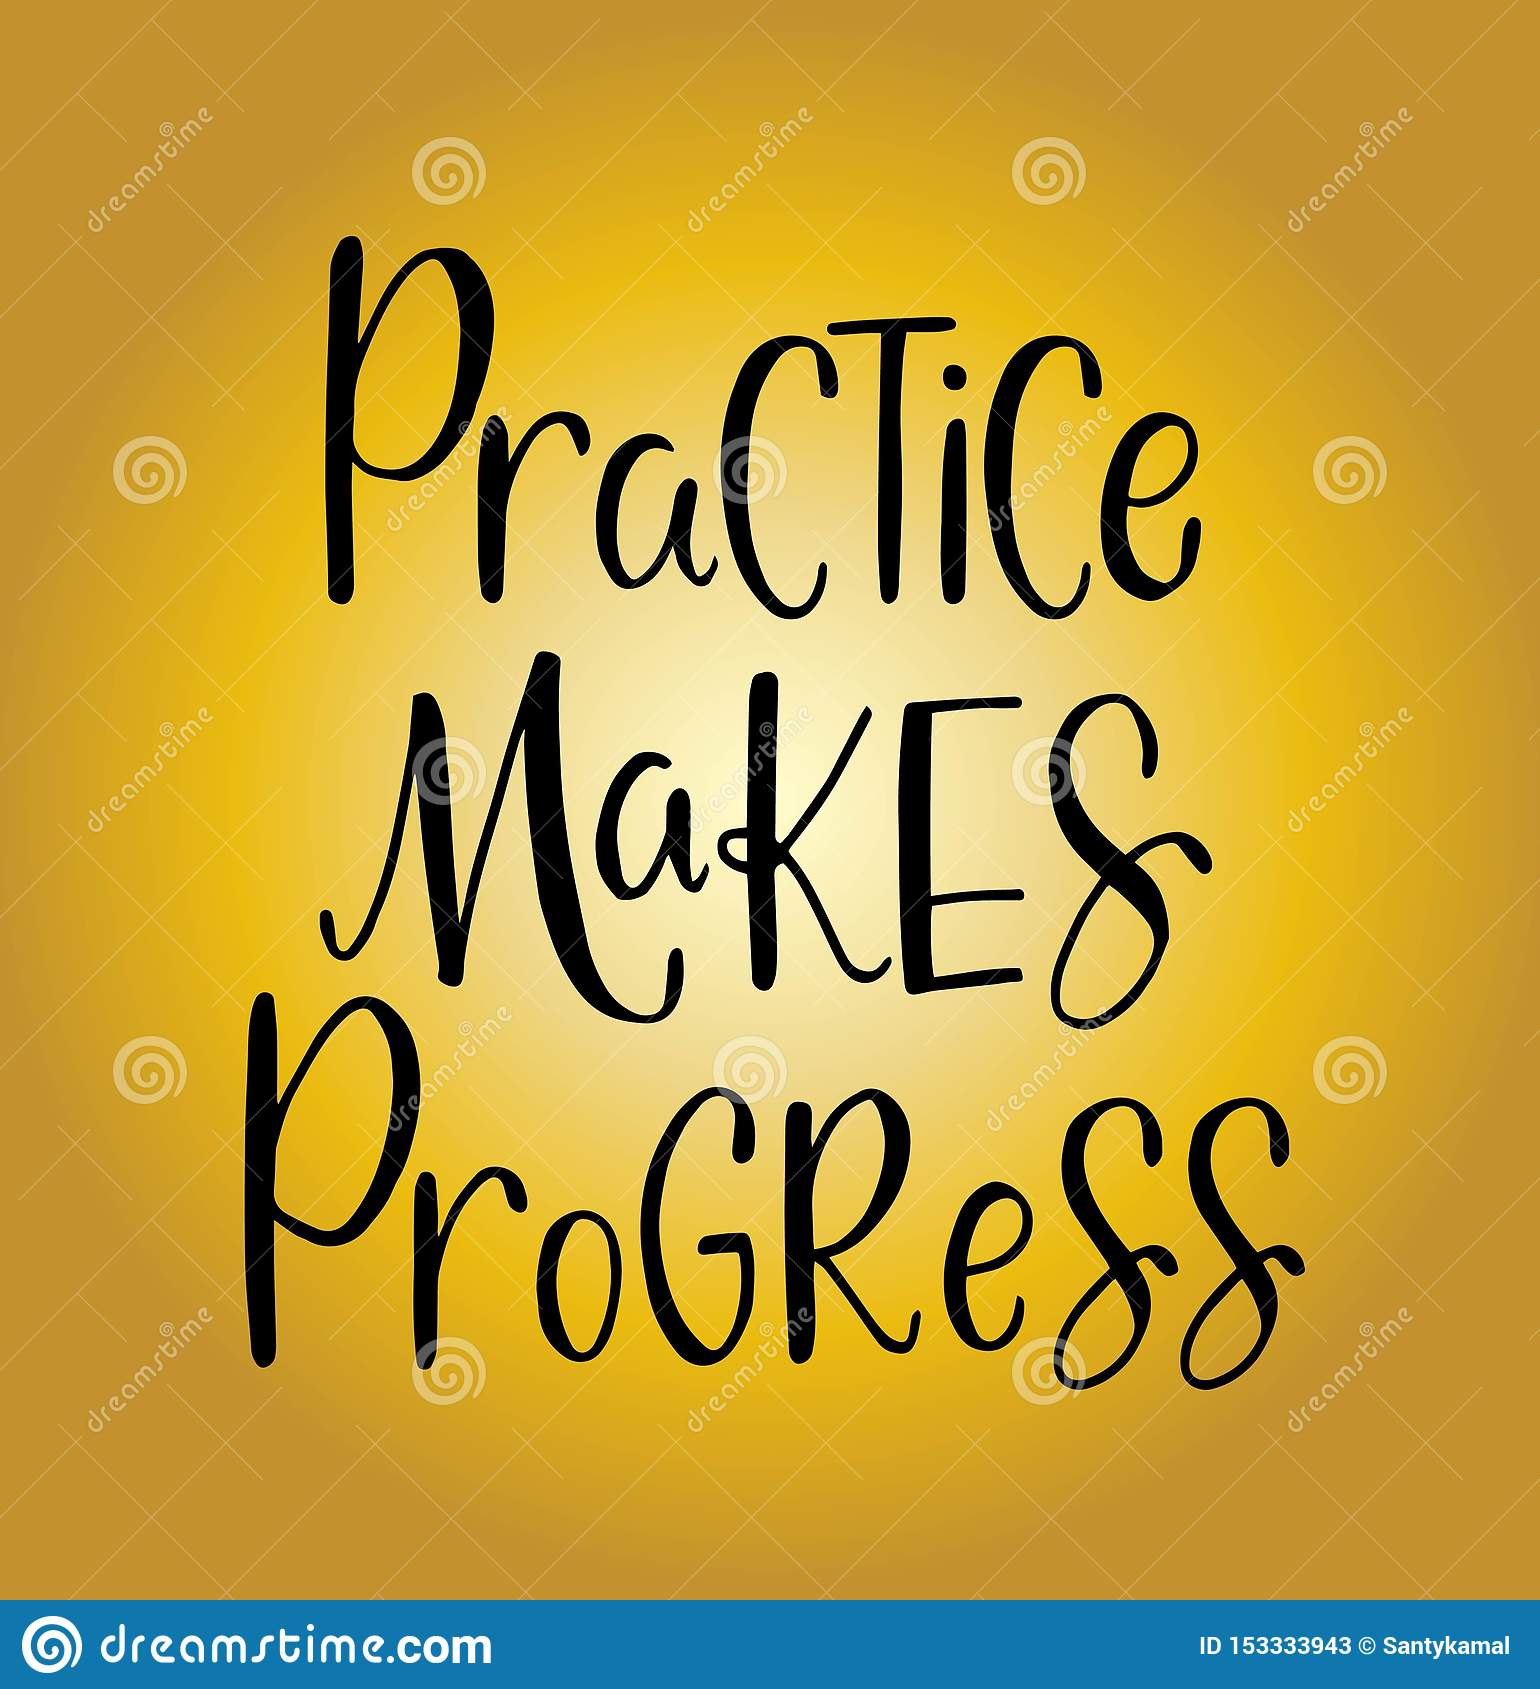 Practice makes progress, hand drawn typography poster. T shirt hand lettered calligraphic design